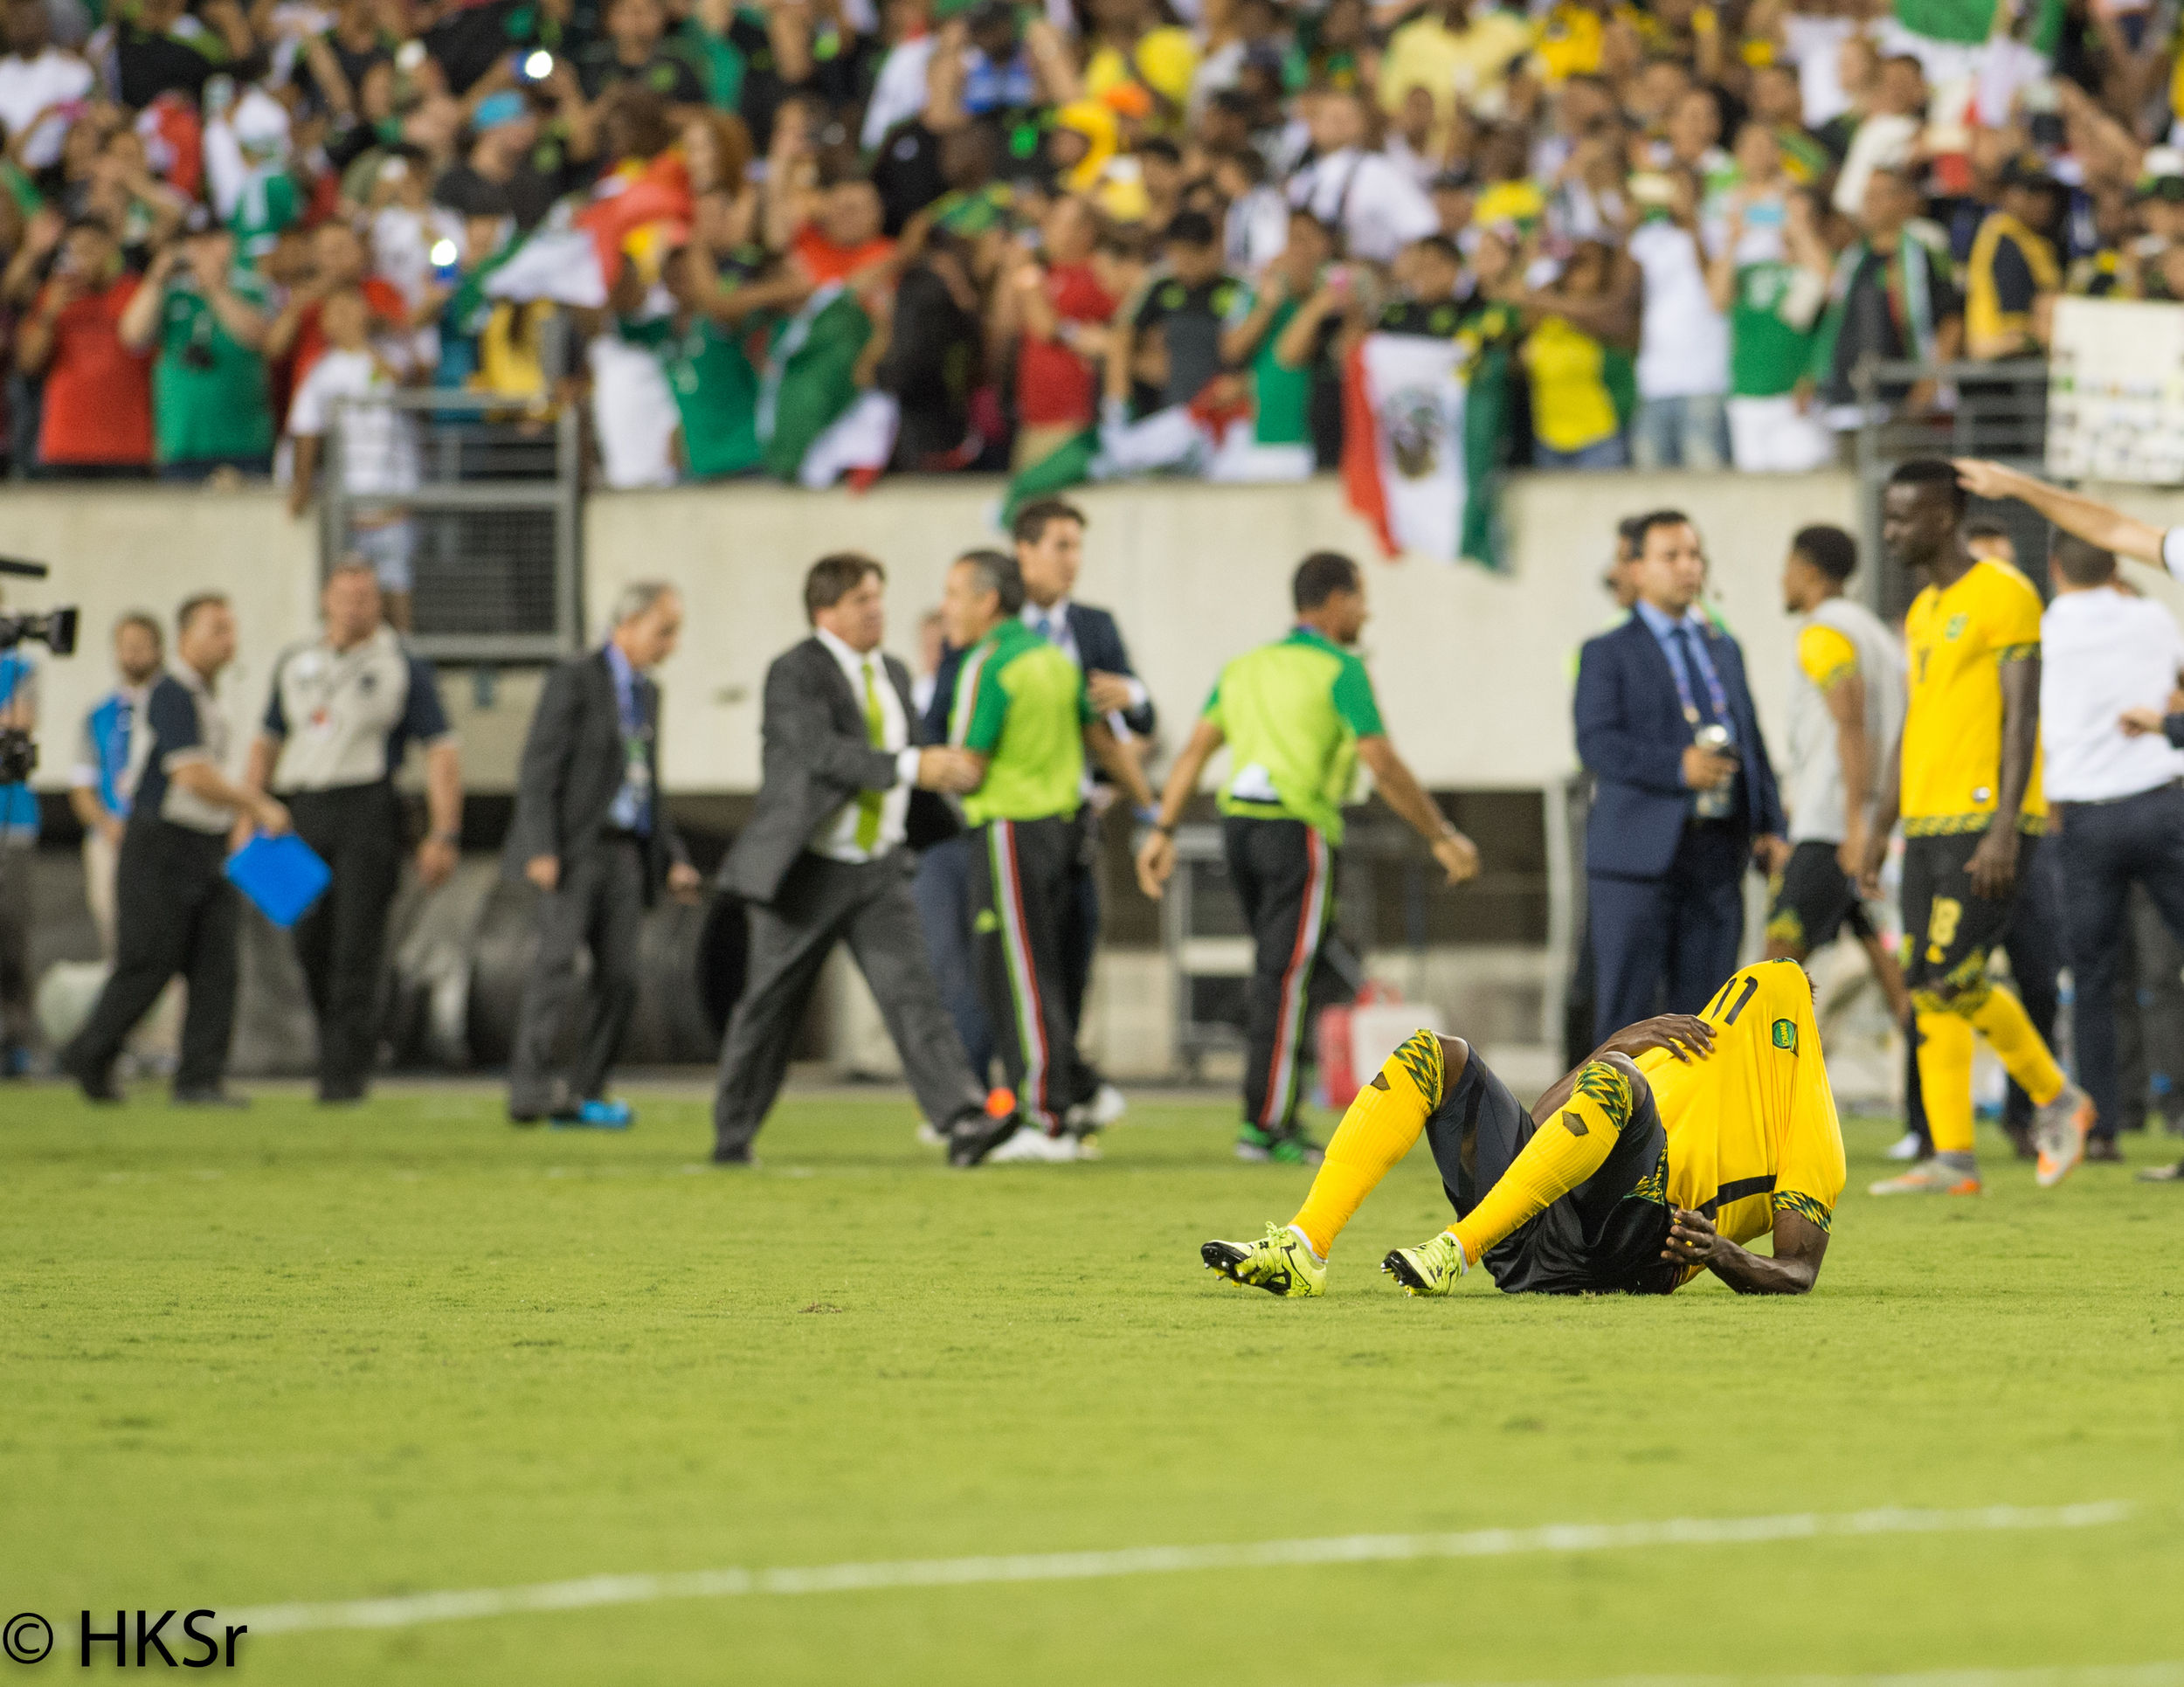 This about sums up the night for Jamaica as they lose to Mexico 3-1 in the Concacaf Gold Cup 2015.